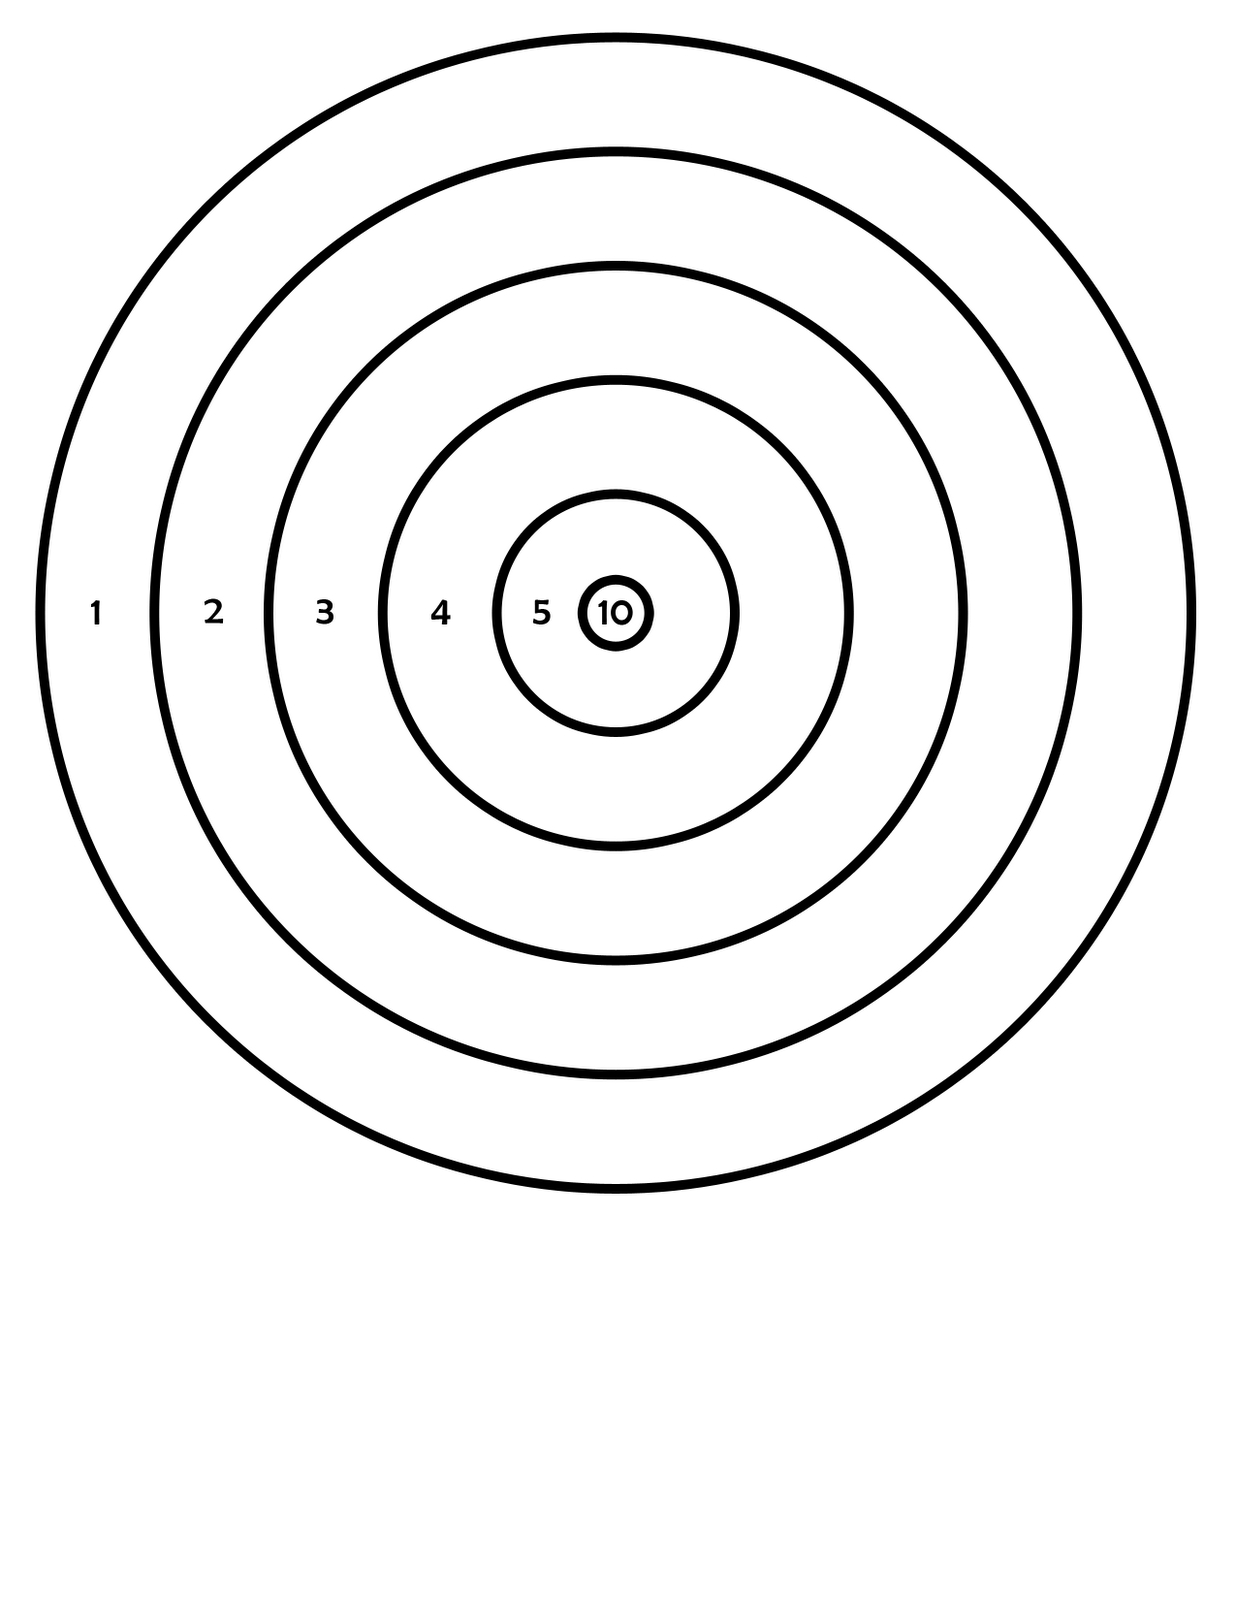 Printable Targets | 411Toys: Free Printable Airsoft Targets - Free Printable Shooting Targets